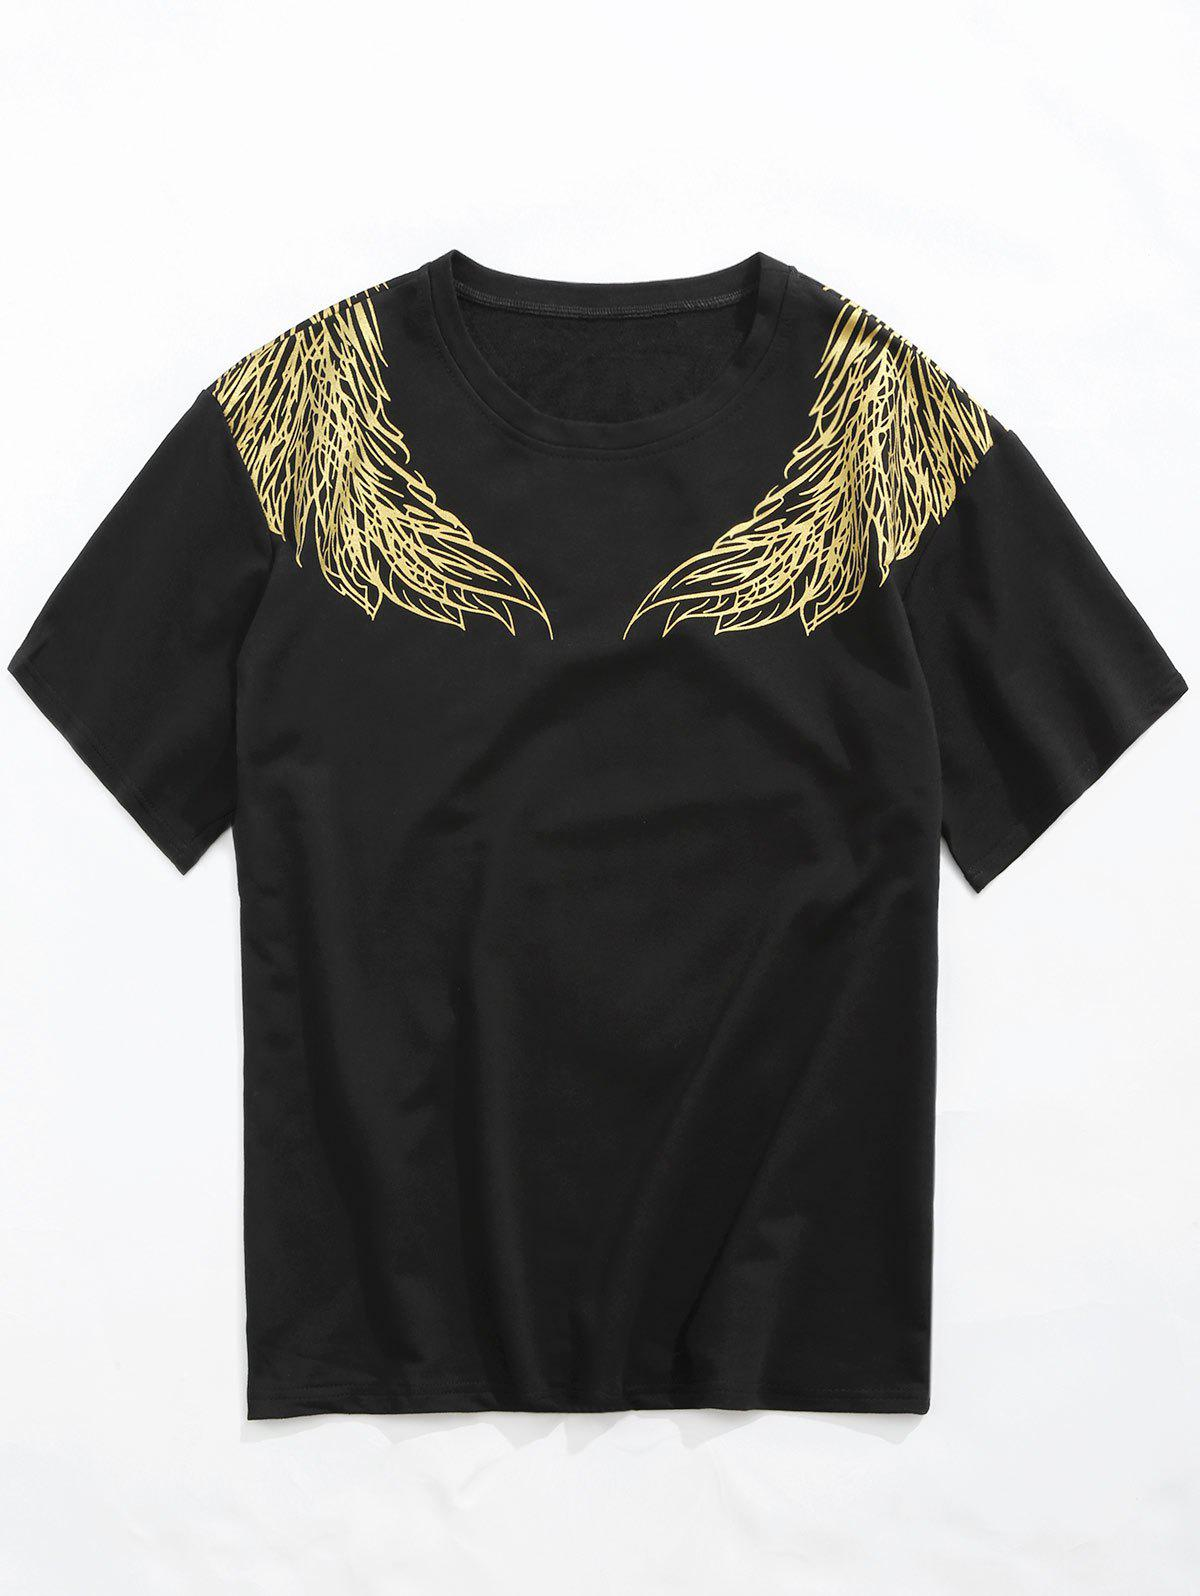 Shop Casual Phoenix Wing Print Round Neck Tee